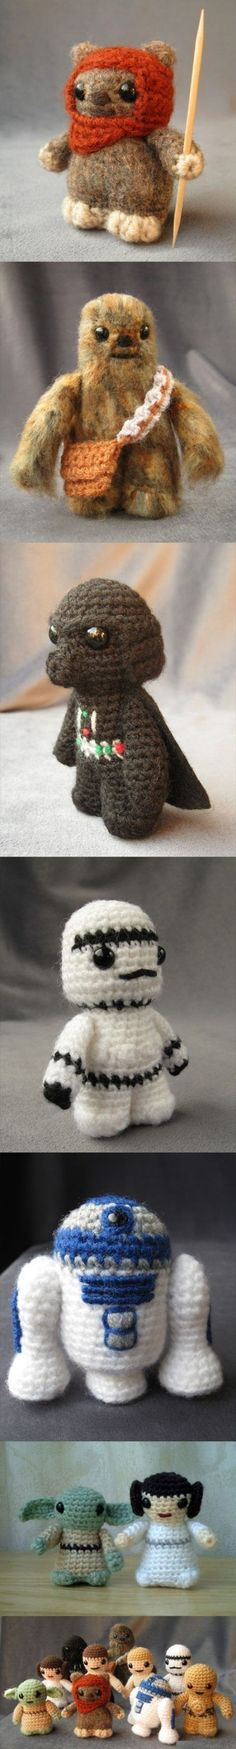 May the crochet be with you. oh @Sherri Volf Snipes